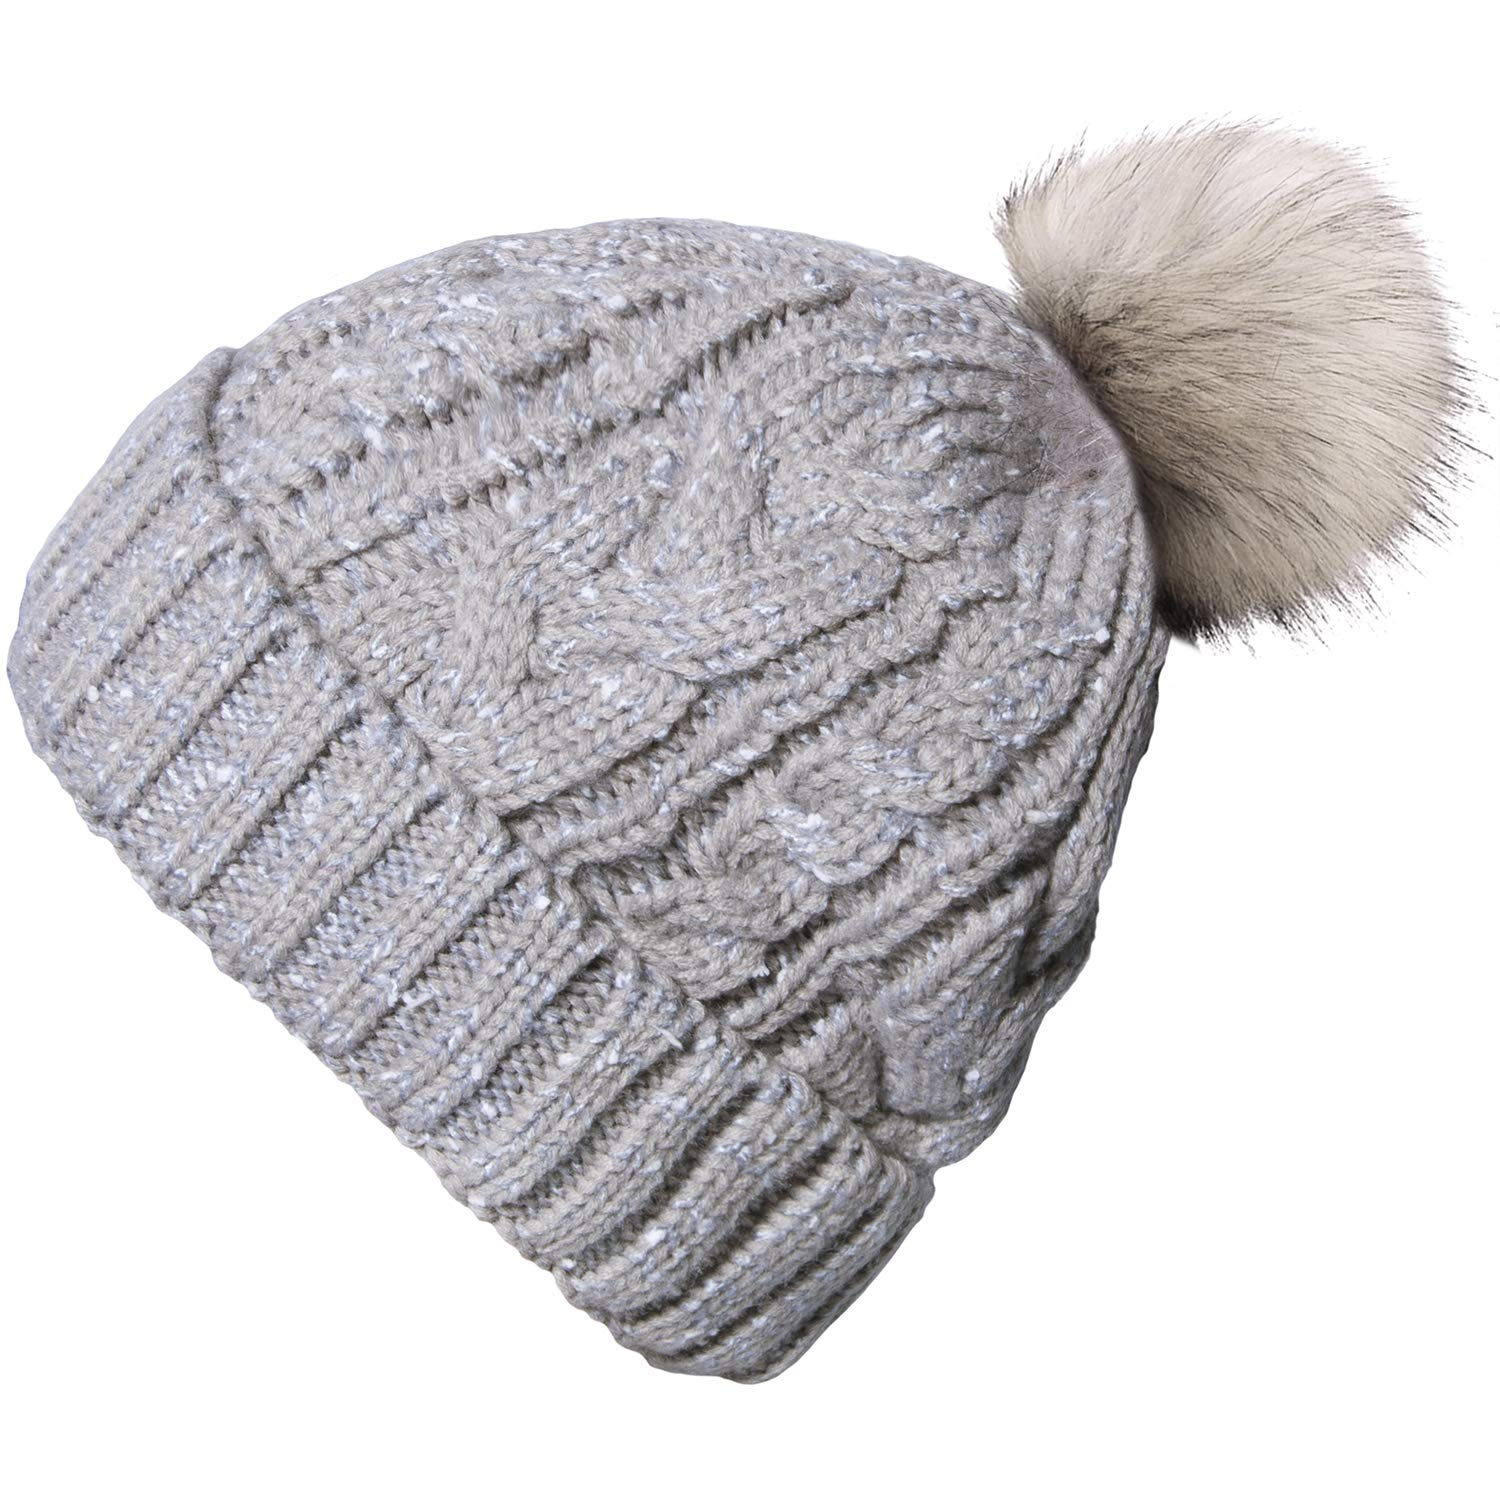 77fa9f117c5 YSense Women Winter Warm Cable Knit Beanie Hats Newsboy Cap Visor with  Sequined Flower (A-02(Gray)) at Amazon Women s Clothing store